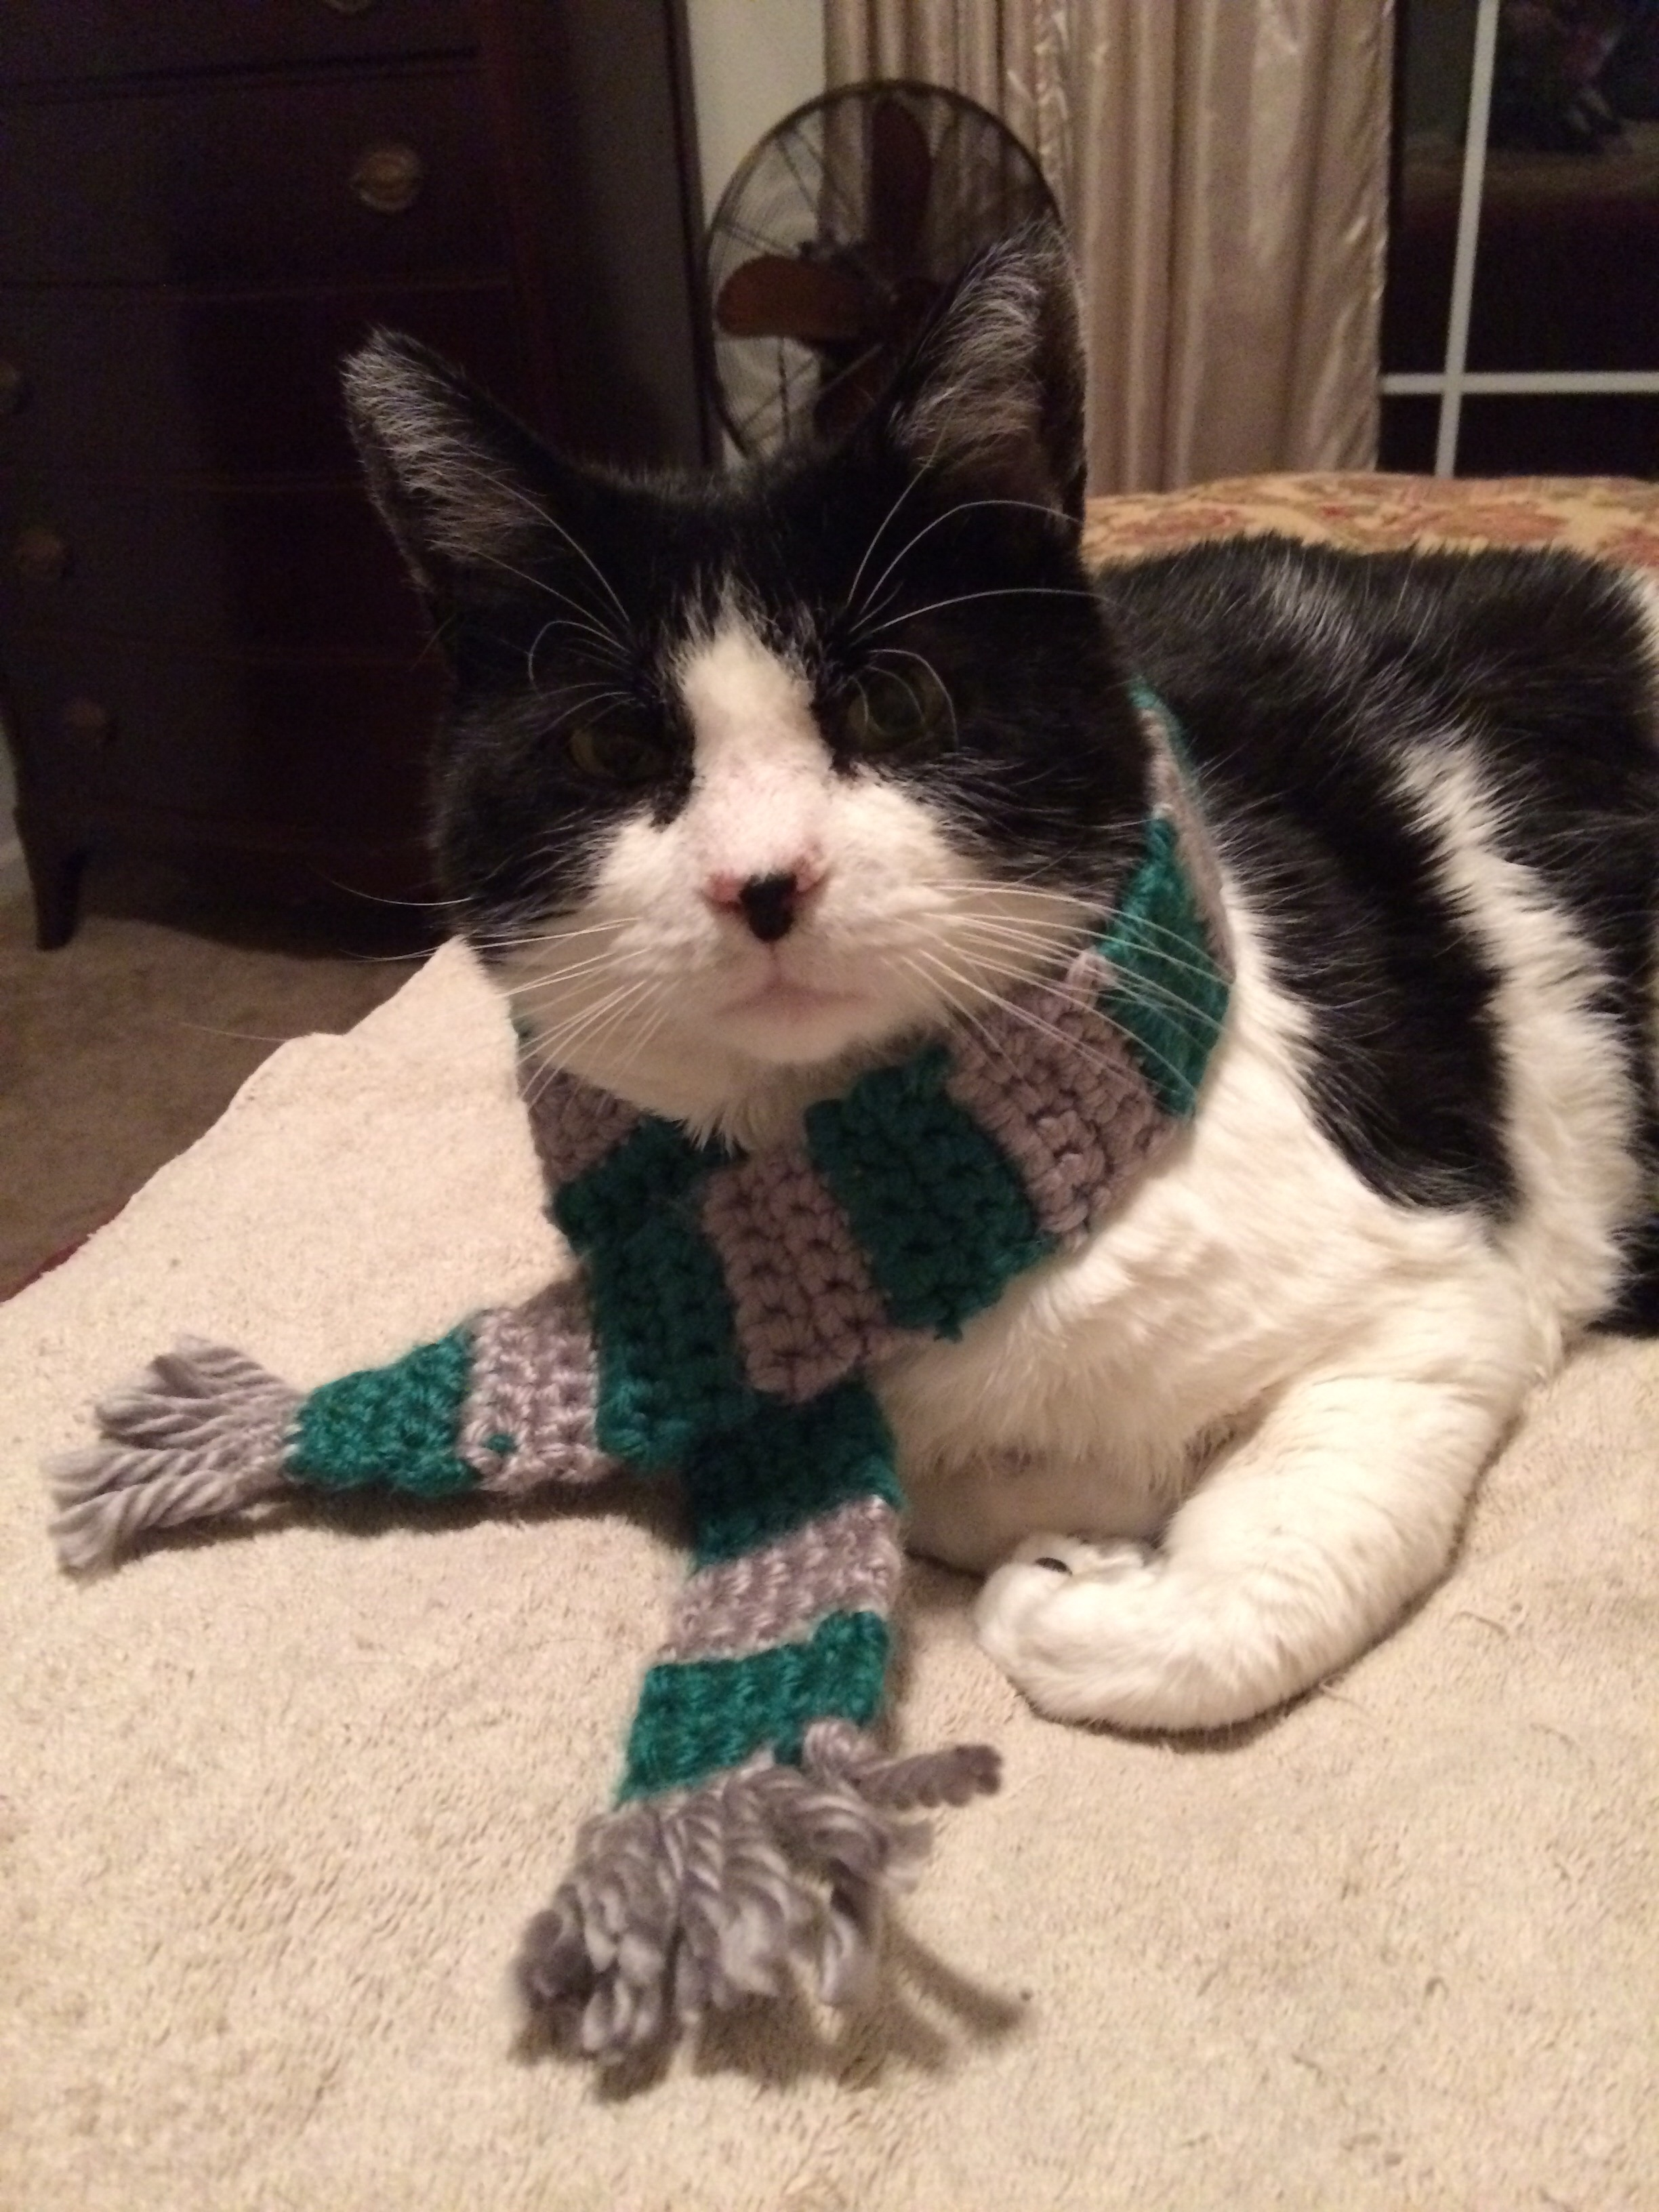 Squeaky Bob and his Slytherin Scarf